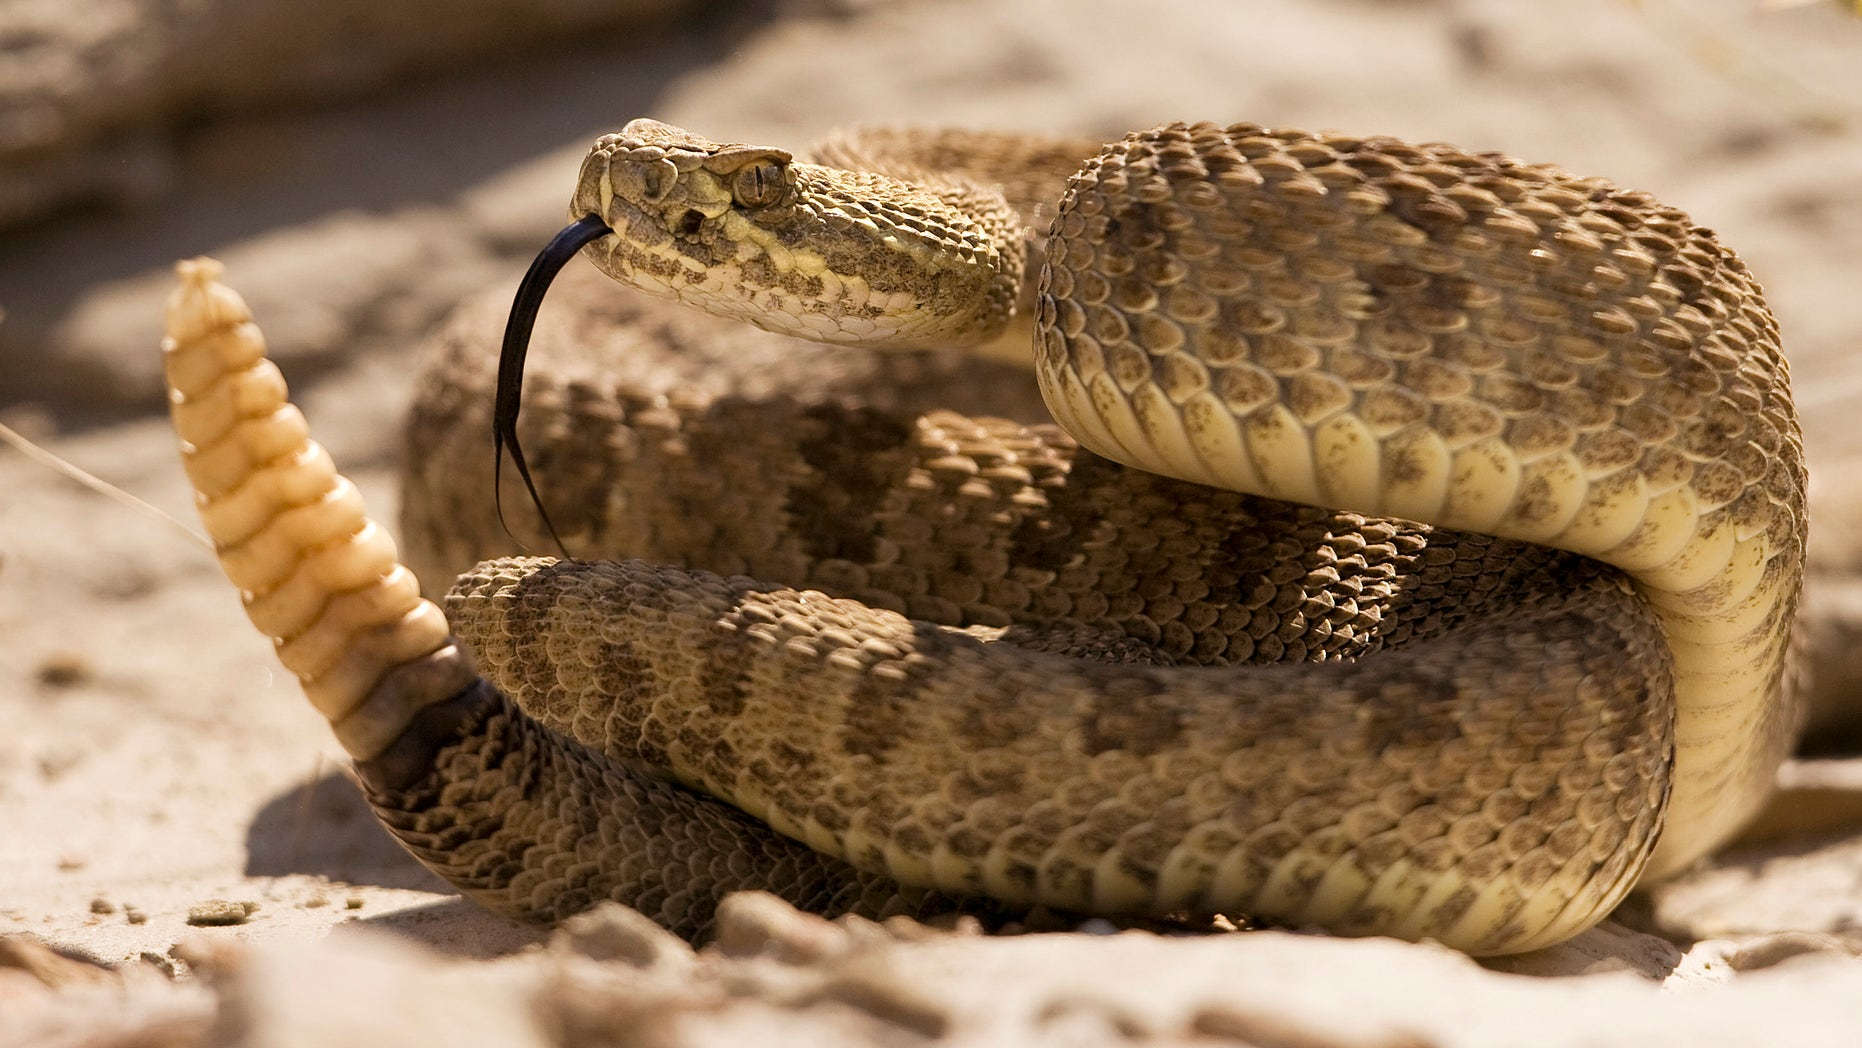 File photo: A prairie rattlesnake warns approaching hikers with a rattle of his tail in Dinosaur Provincial Park, Alberta in this picture taken August 7, 2008.